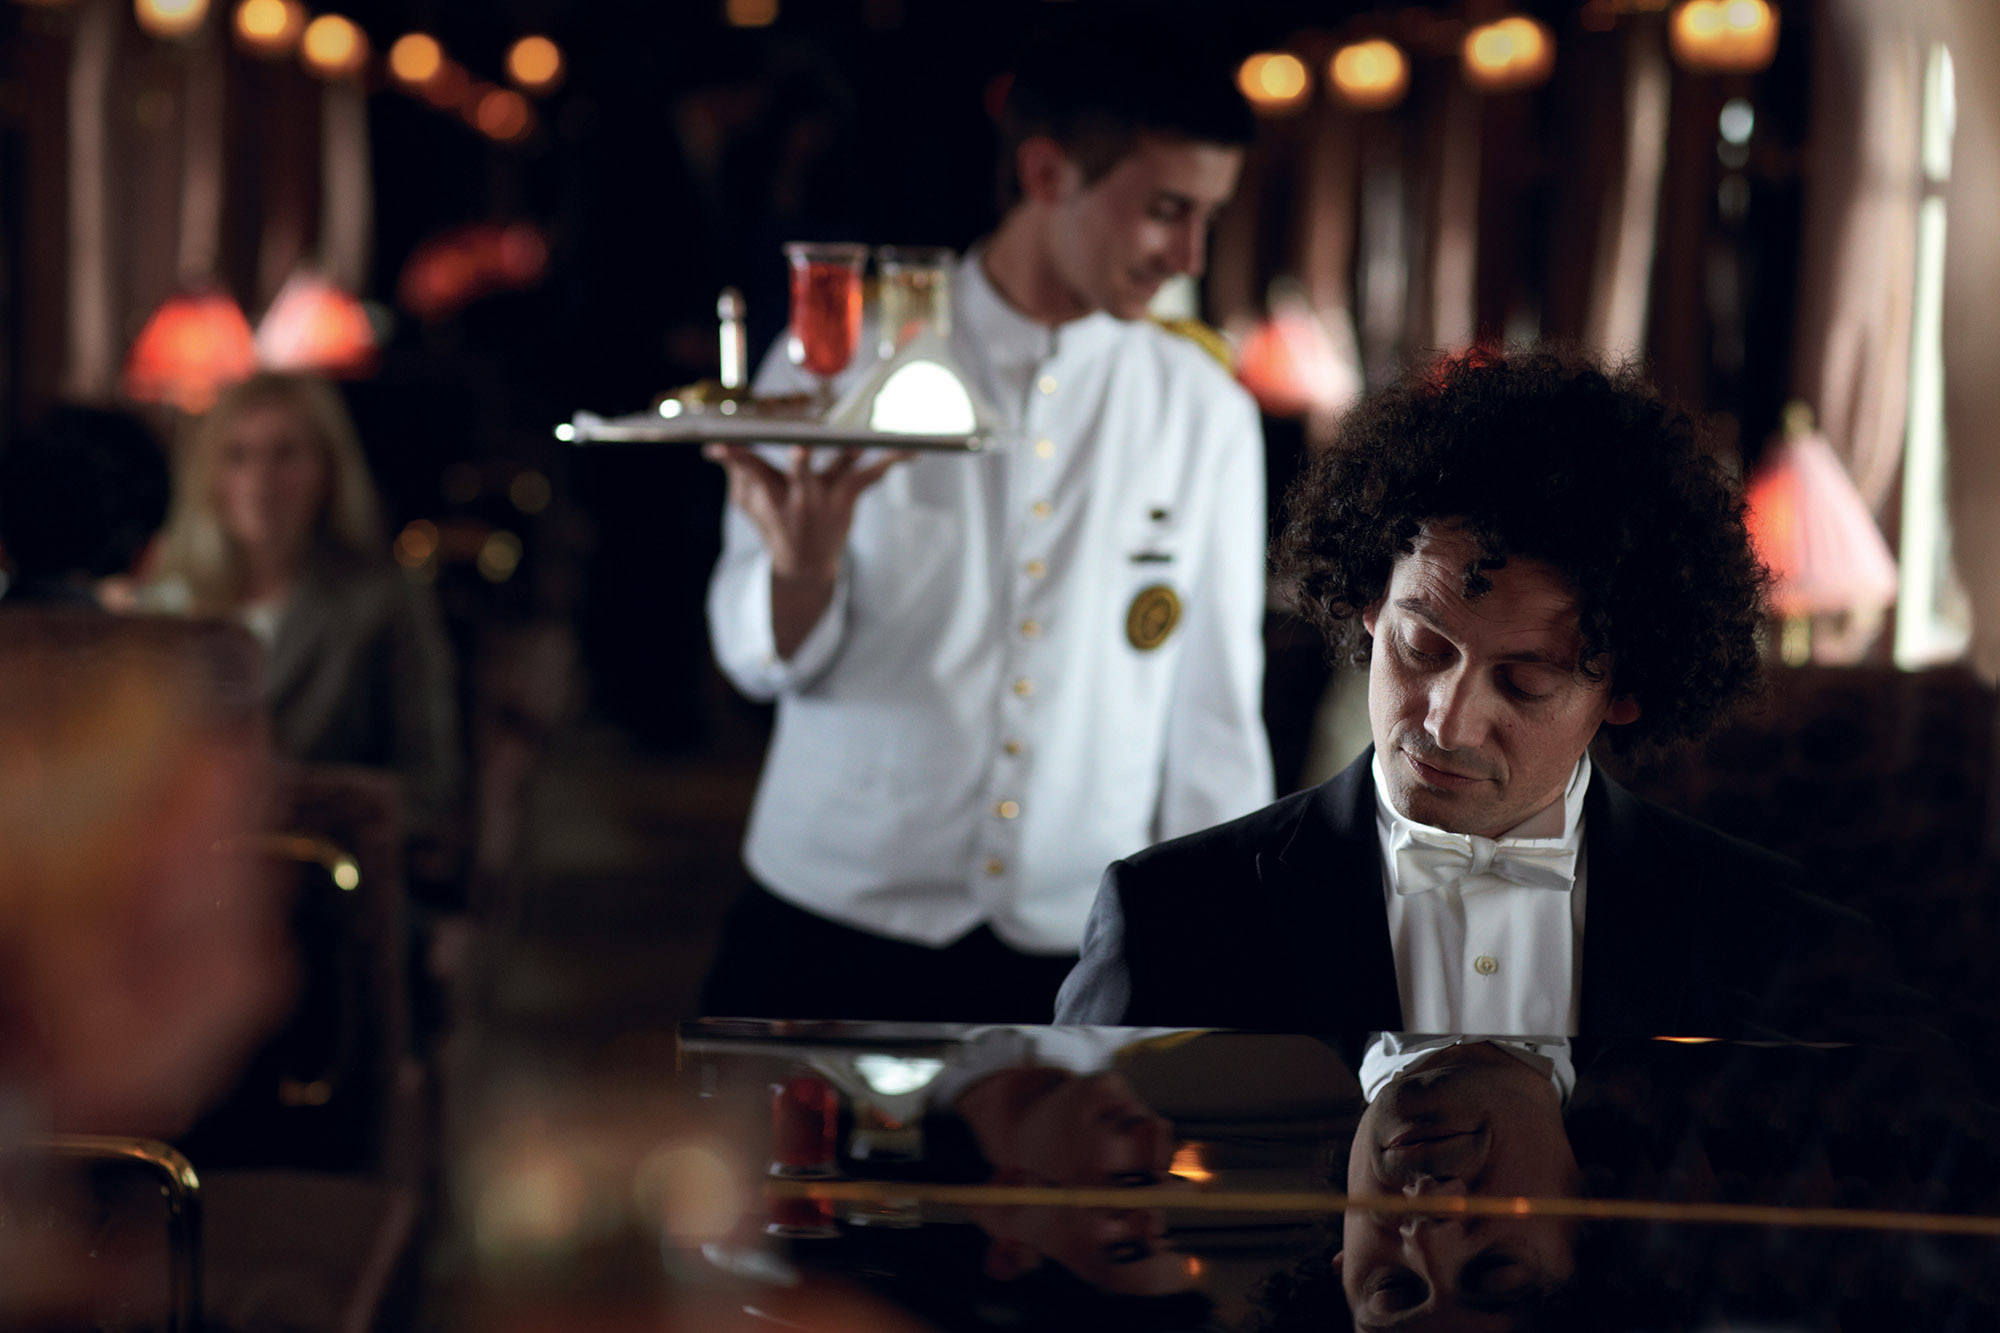 Man sitting at a piano with a waiter carrying a tray with cocktails in the background